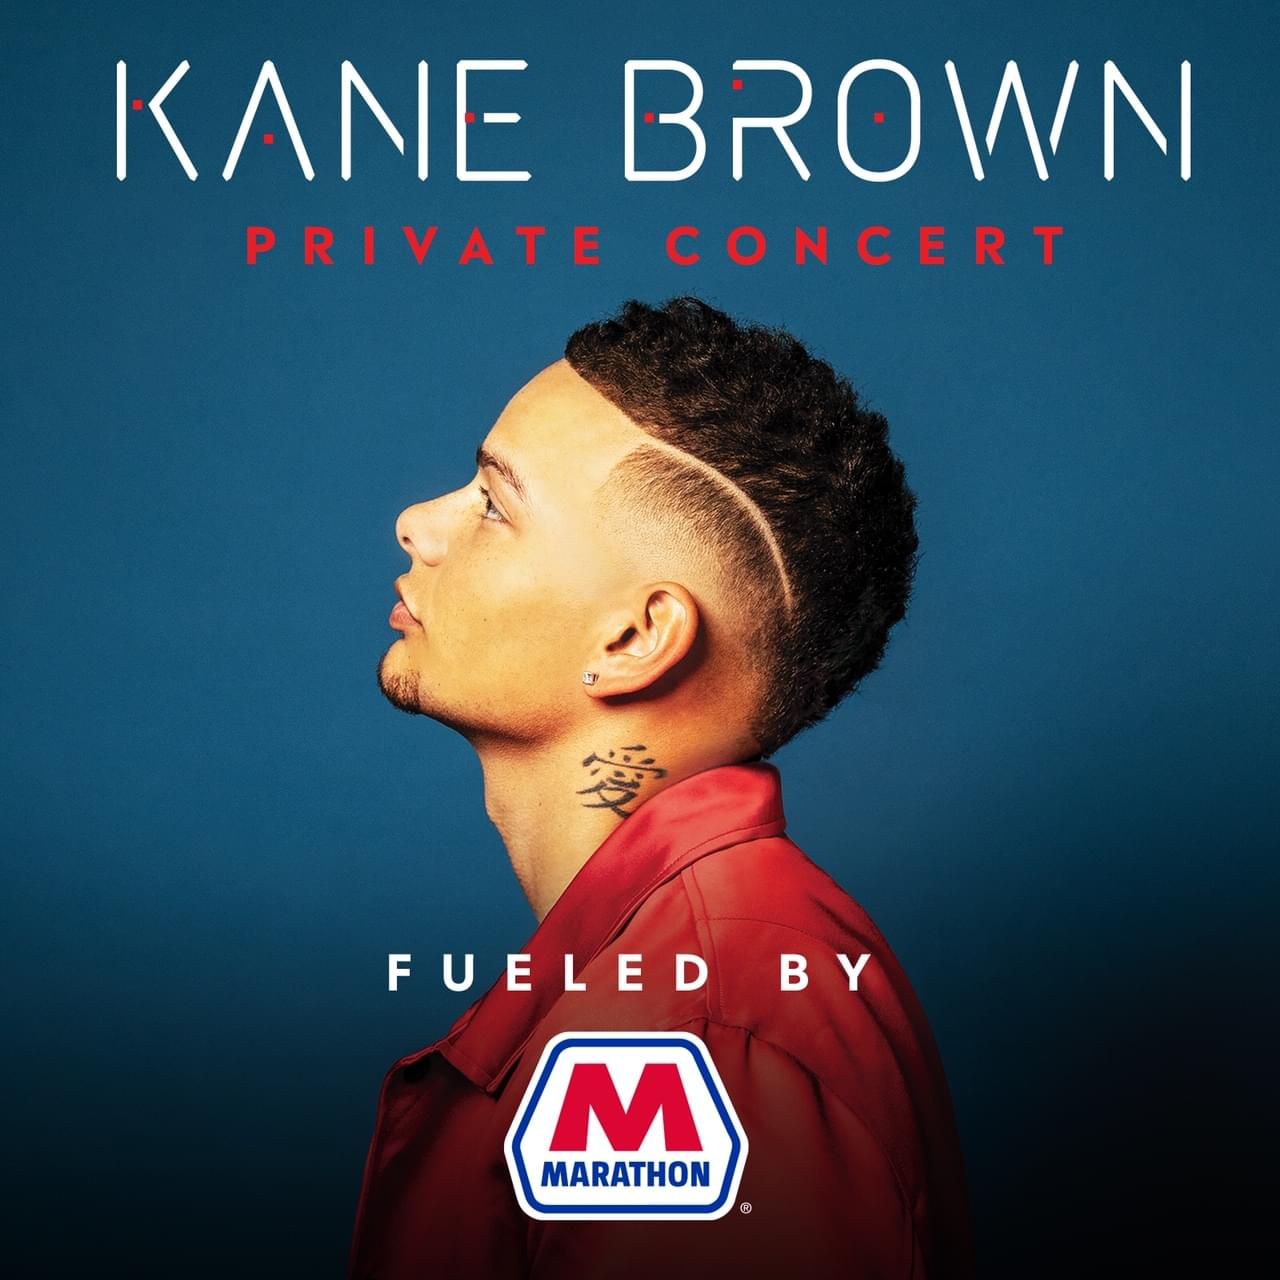 Kane Brown Private Concert Fueled by Marathon